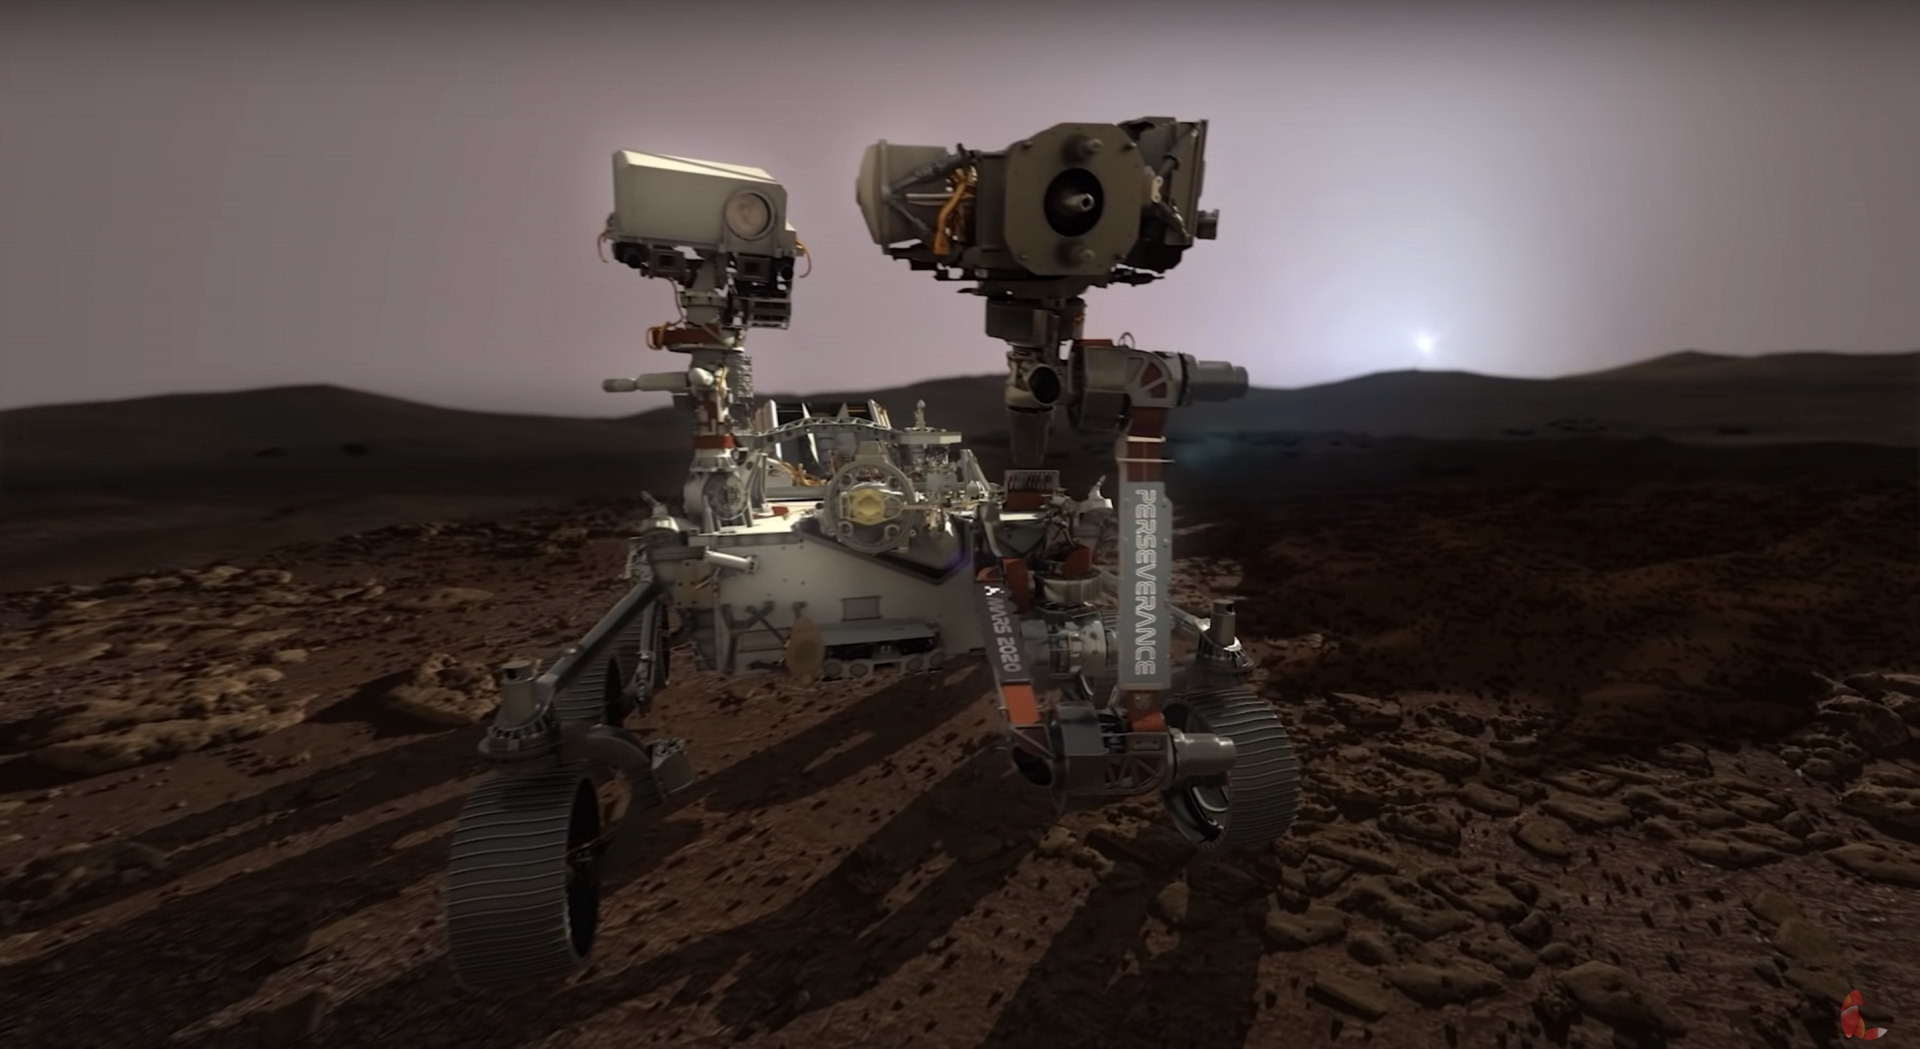 Here's a visualization of how the Perseverance Mars rover is going to land on Mars.